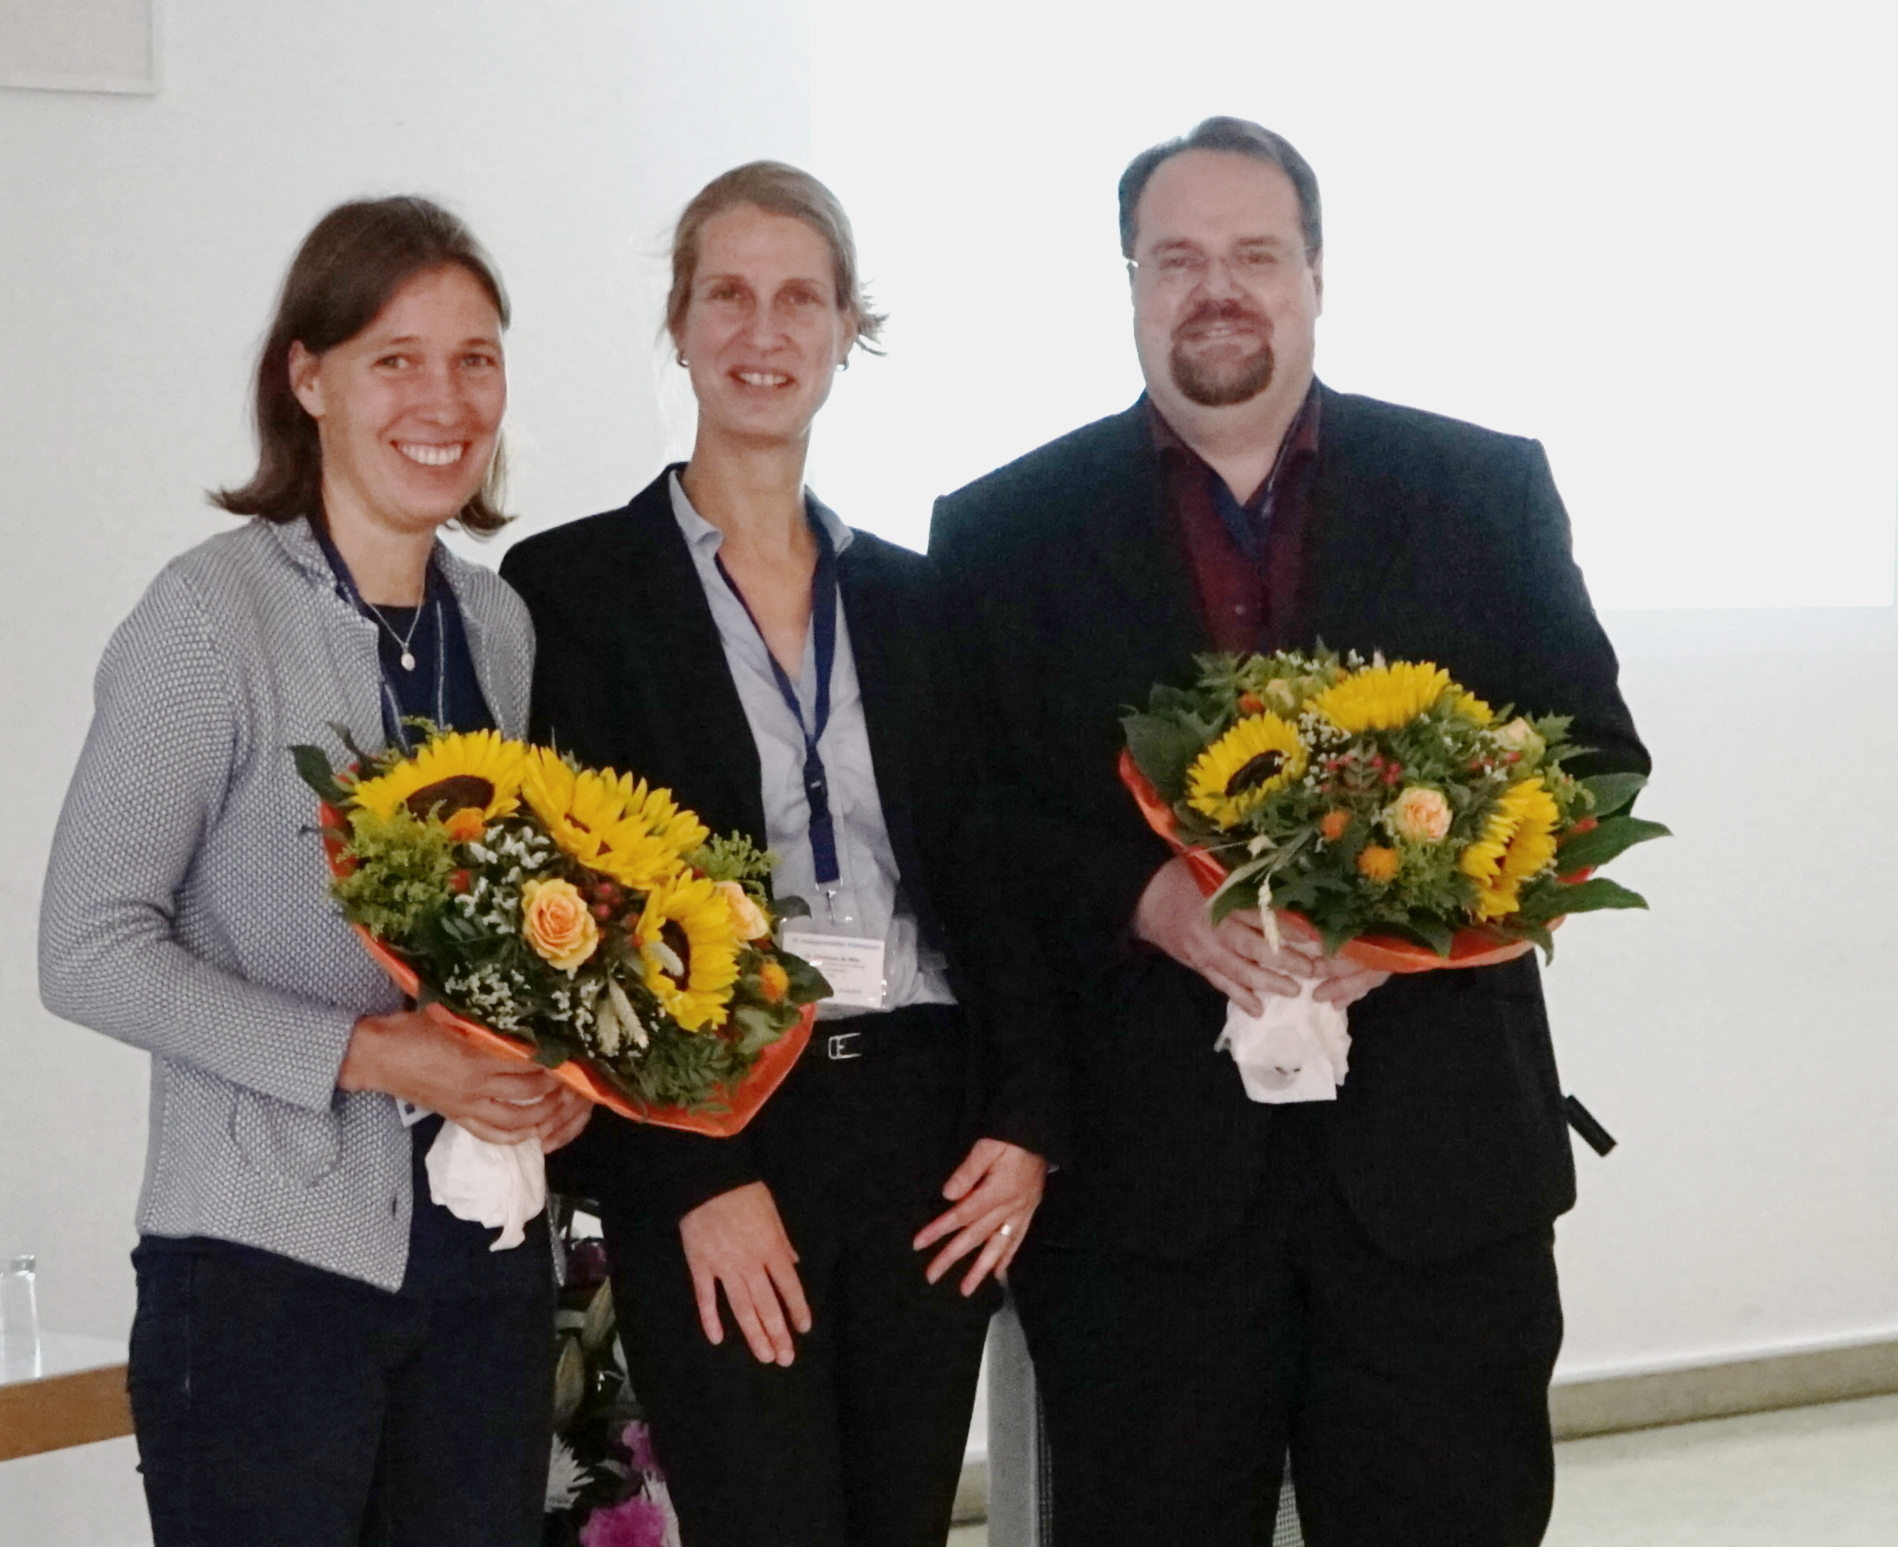 2016 BMBF research award winners together with Christina de Witt from BMBF